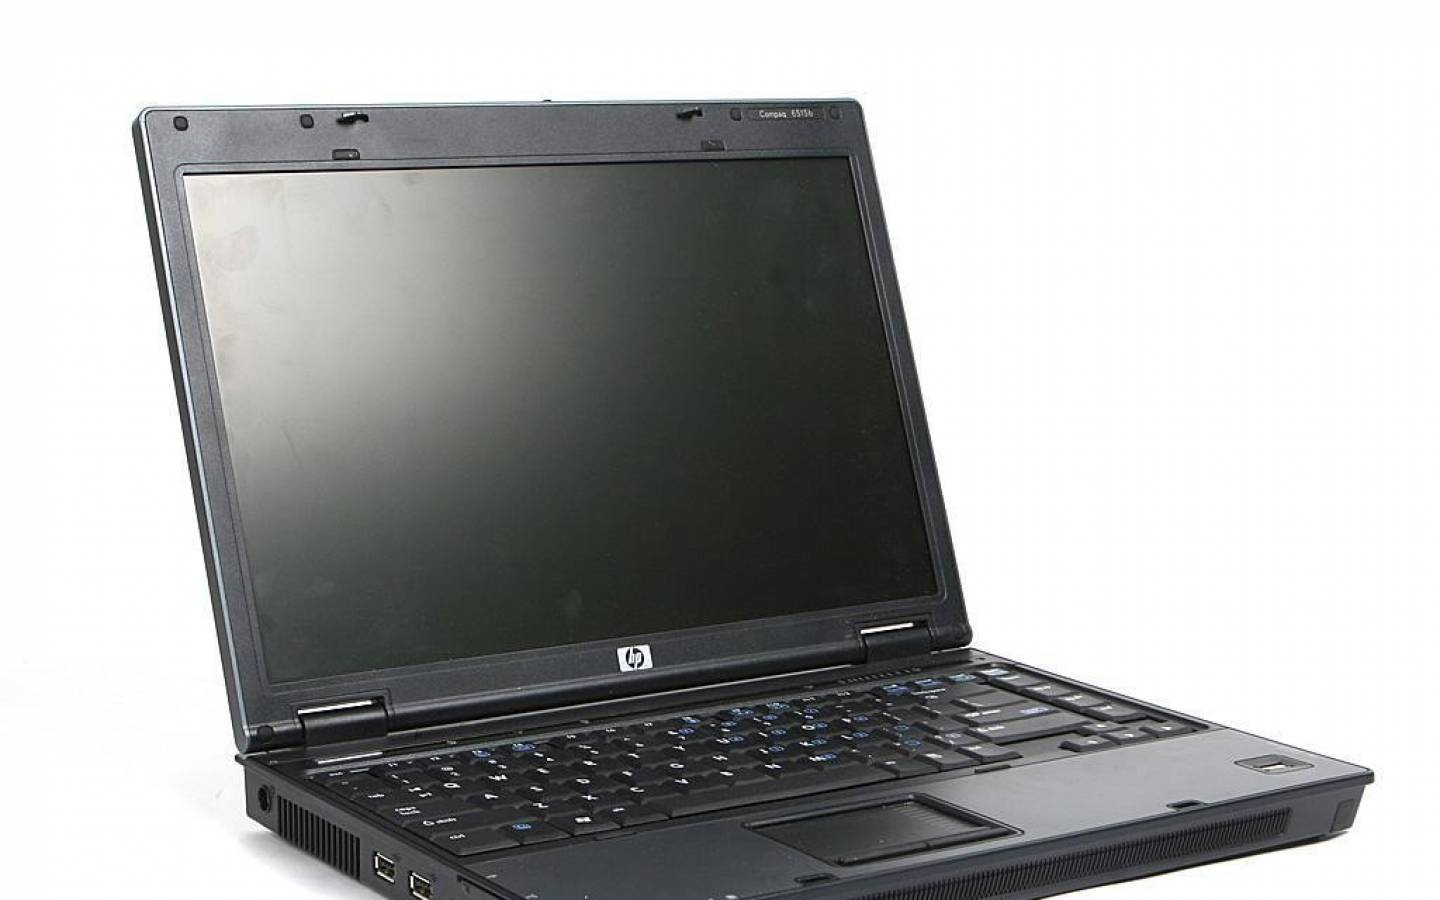 NOTEBOOK  HP6400  1.83GHZ dvdrw